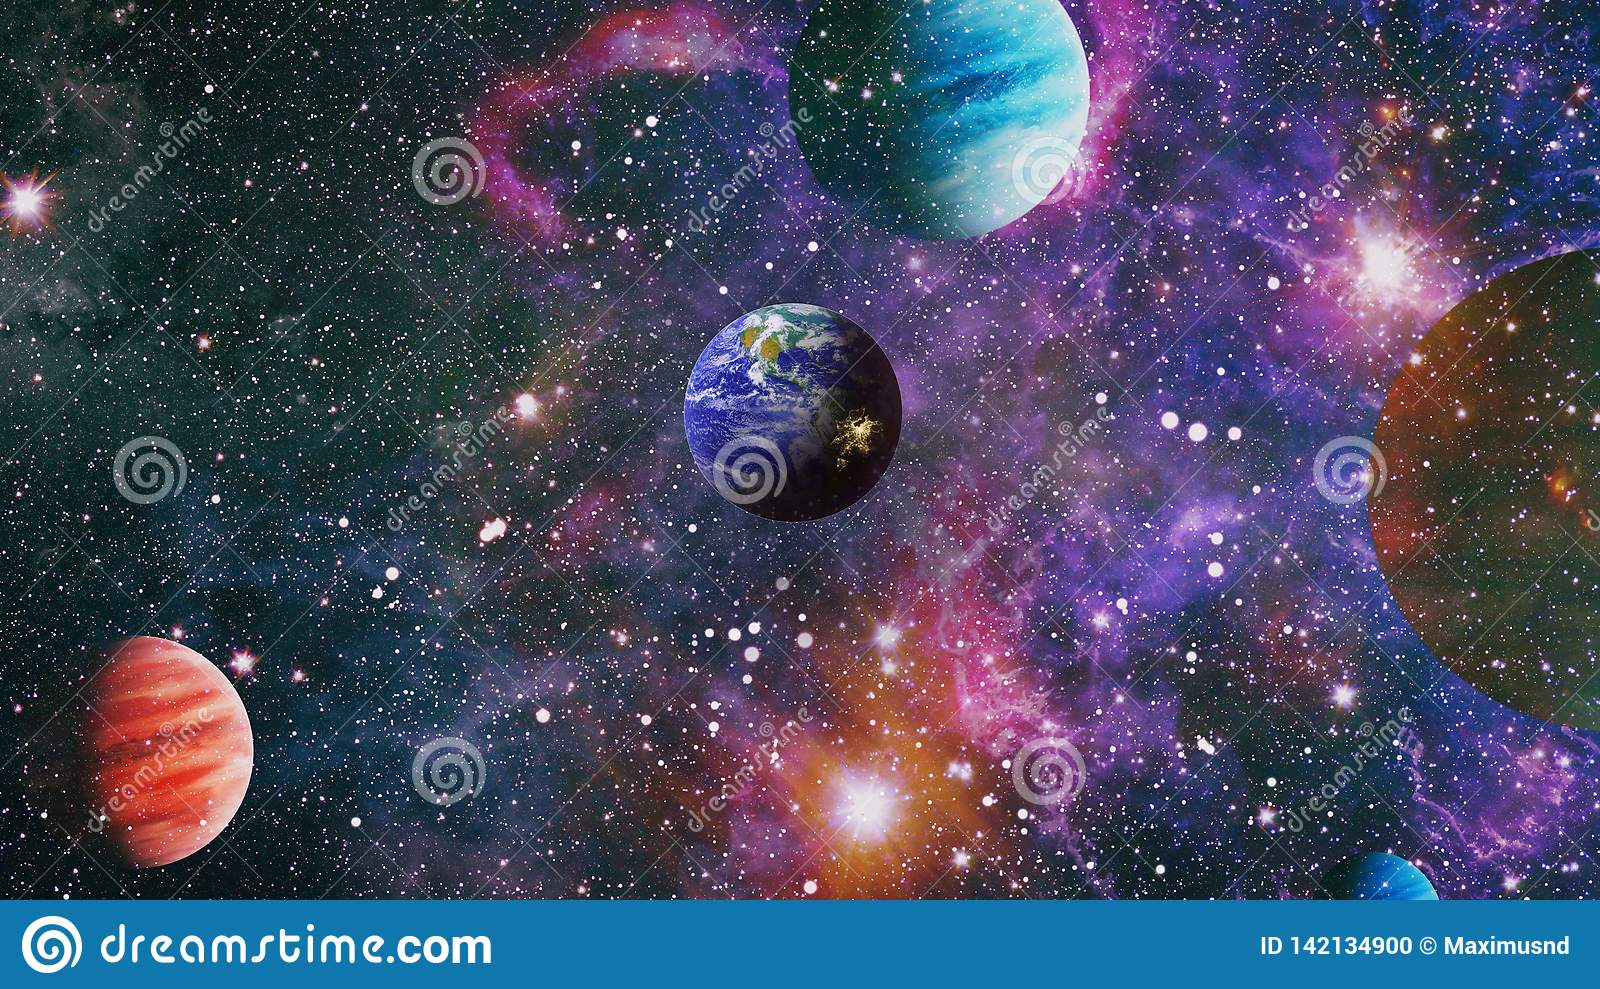 space science earth outer fiction galaxy collage planet galaxies sun illustration preview